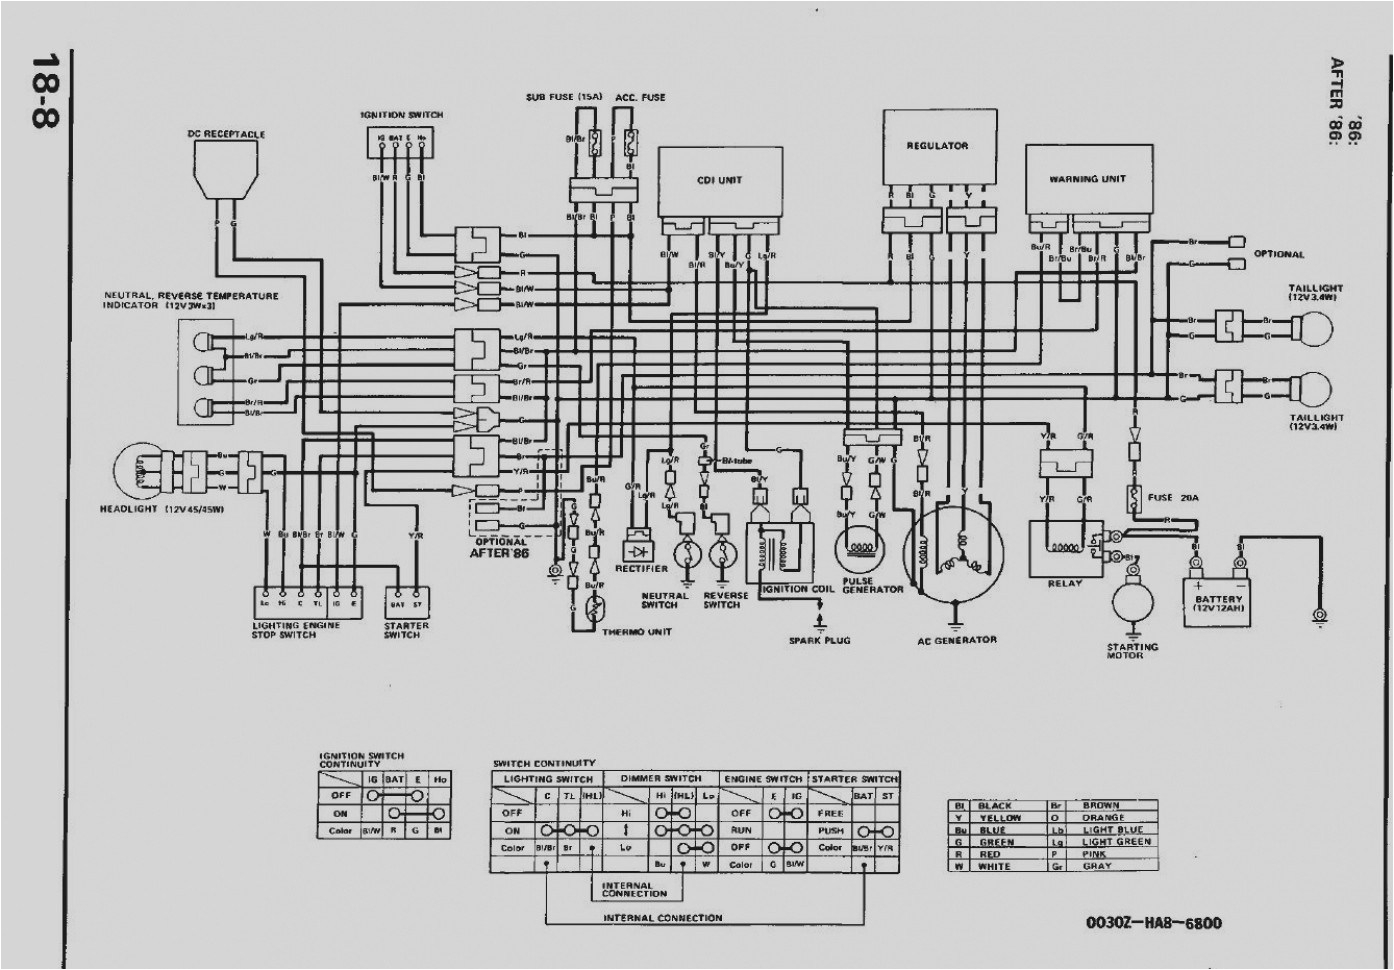 trx300 wiring diagram wiring diagram today trx300 wiring diagram needed atvconnection atv enthusiast